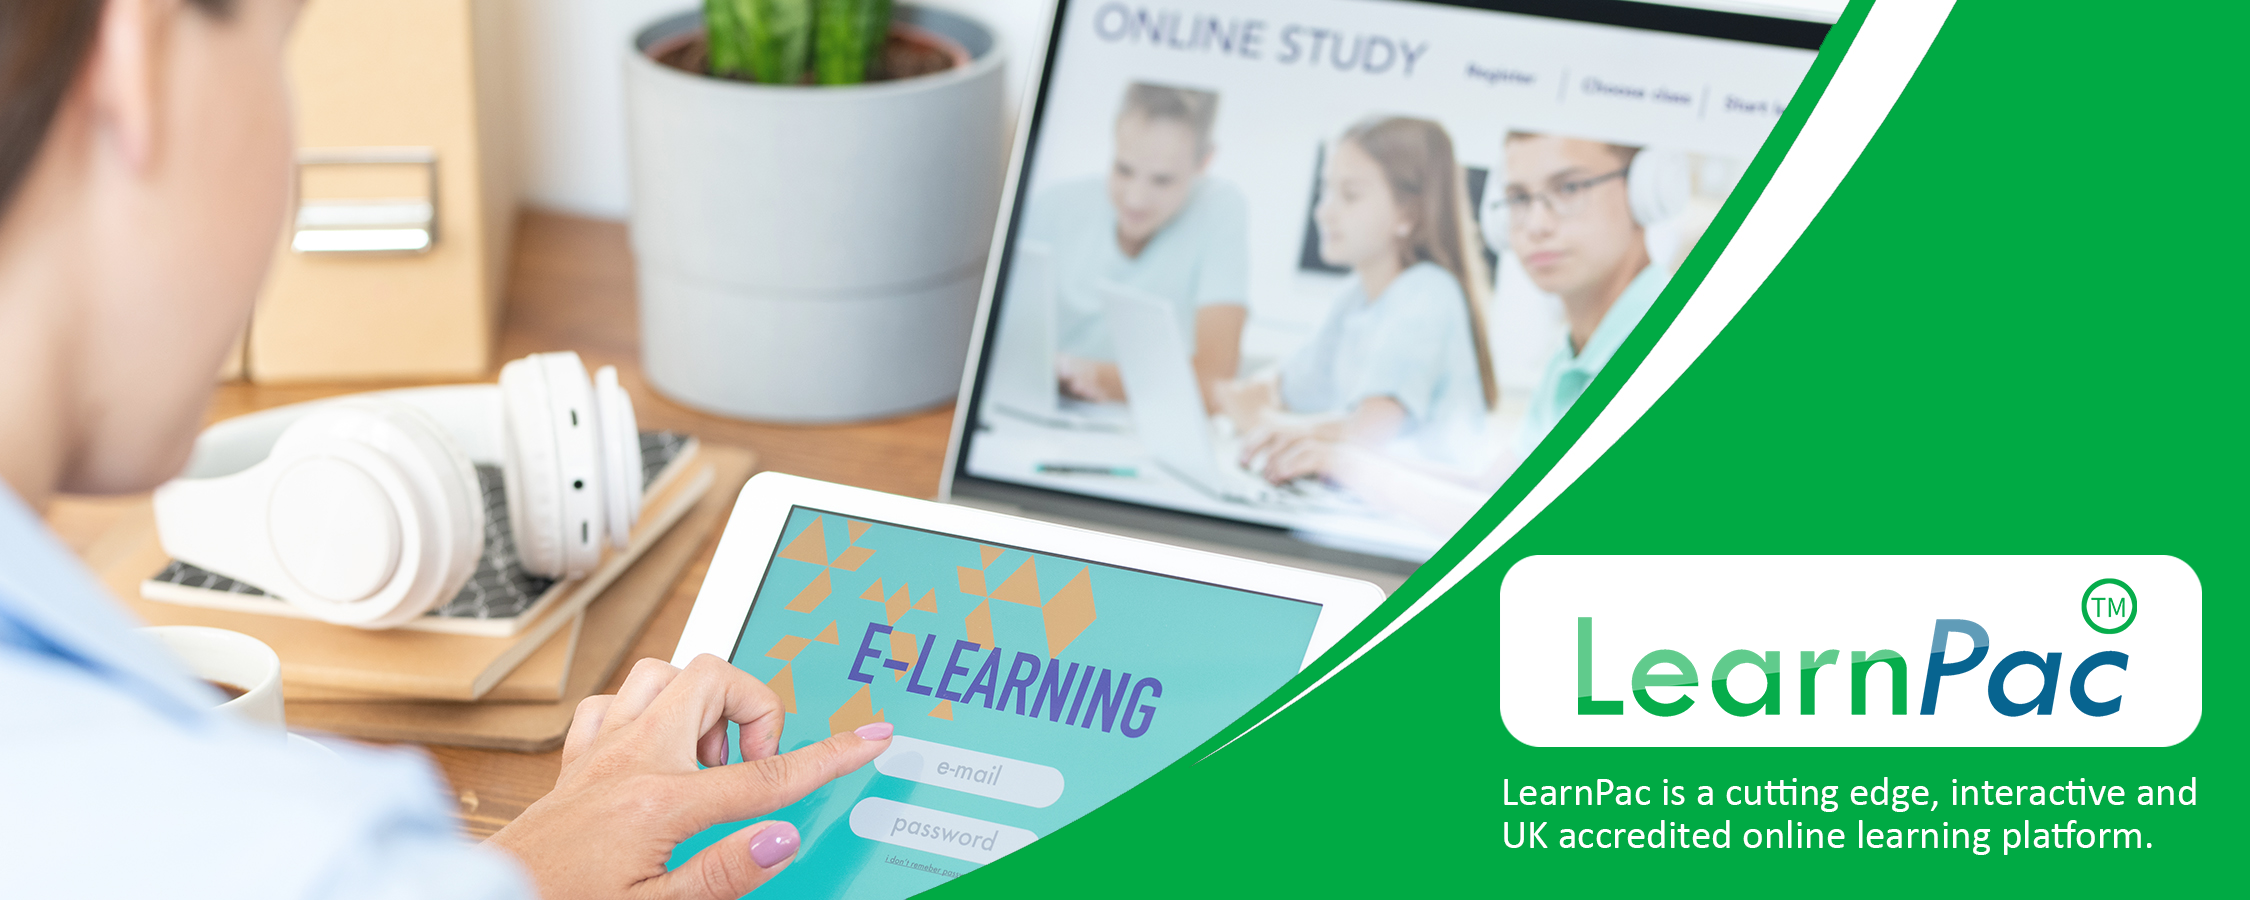 Infection Prevention and Control - Online Learning Courses - E-Learning Courses - LearnPac Systems UK -